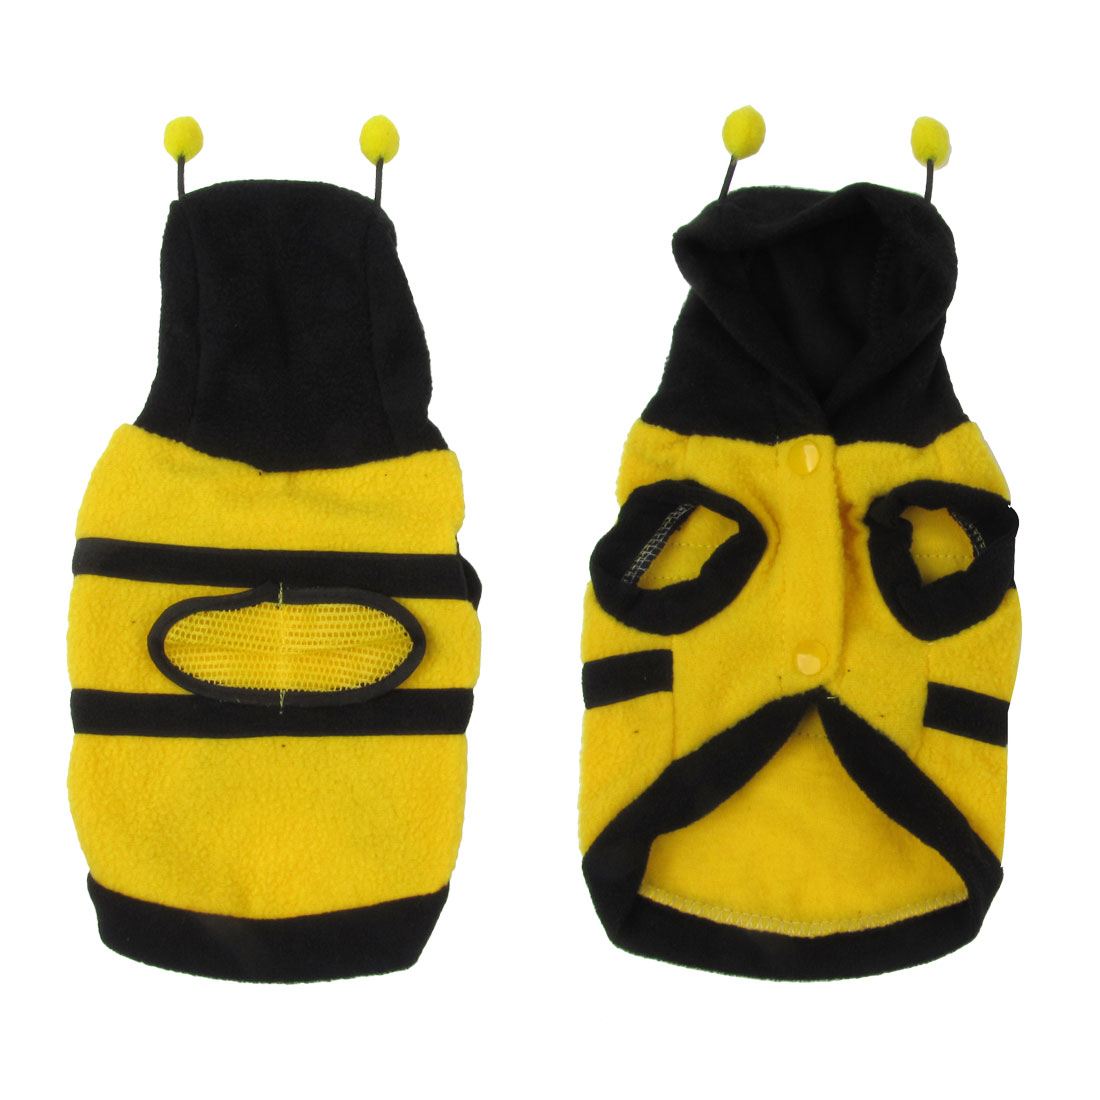 Unique Bargains Single Breasted Bee Shaped Hooded Pet Dog Coat Jacket Yellow Black Size S